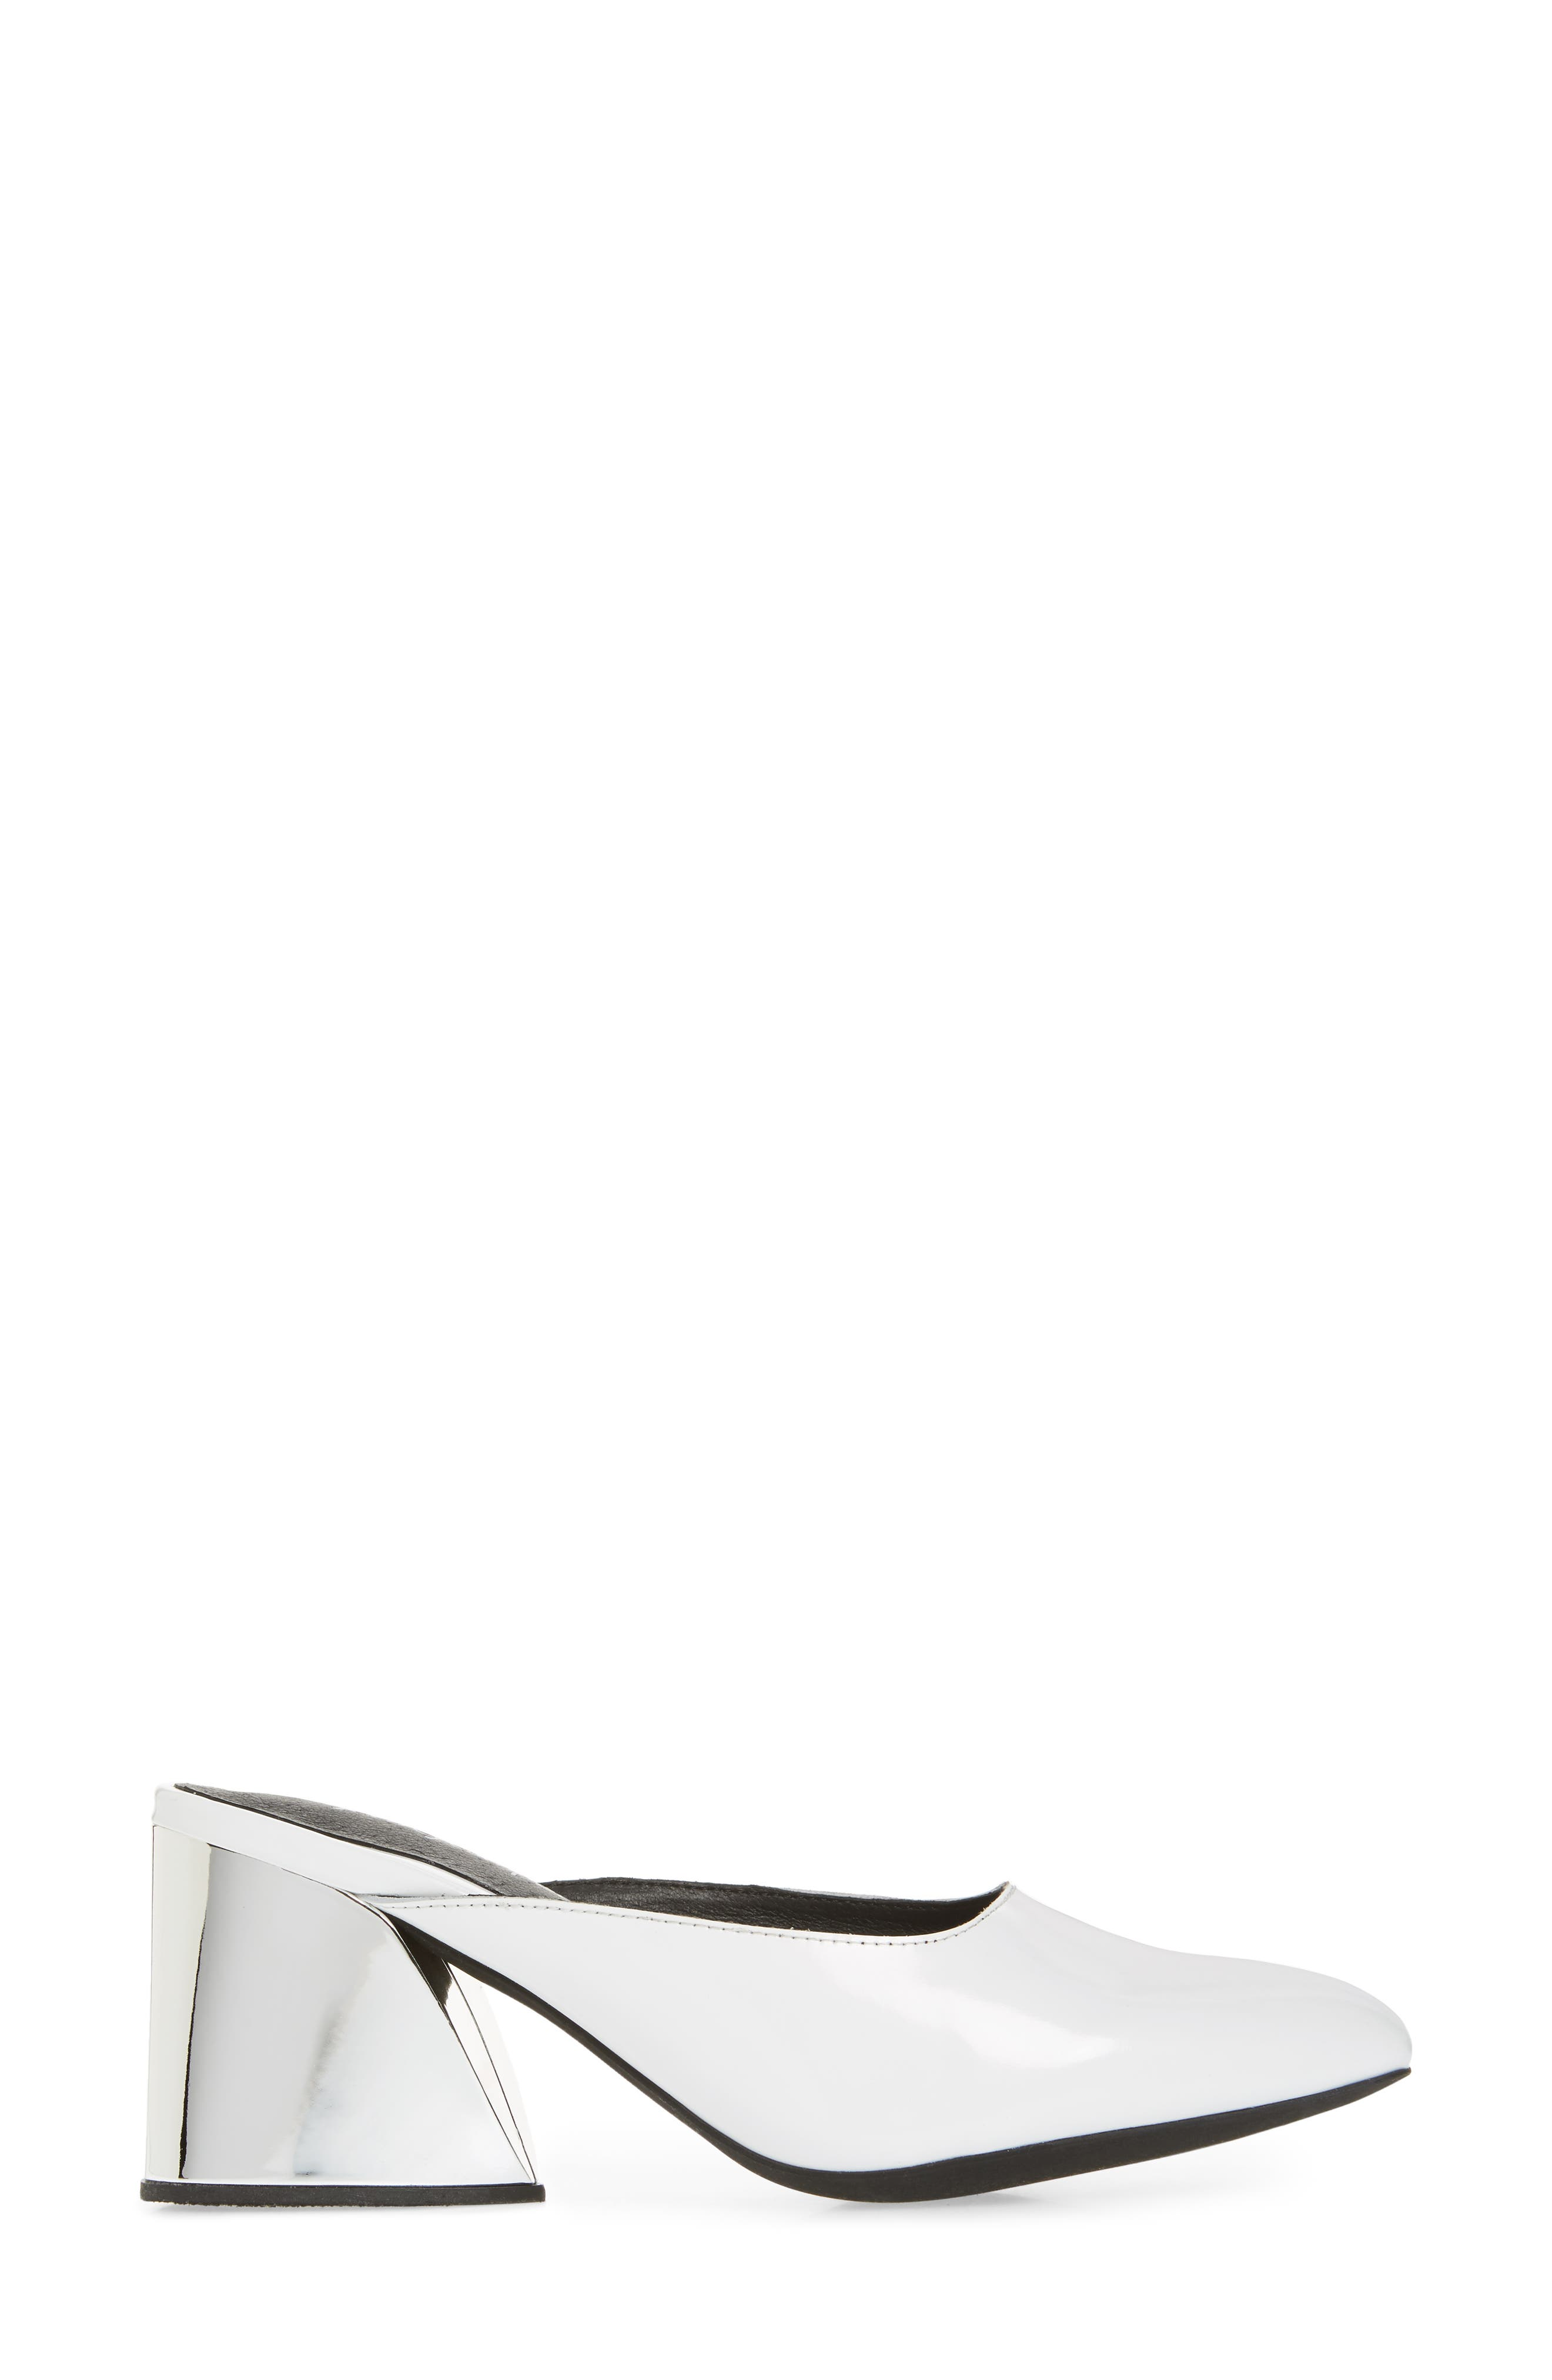 Lamer Flared Heel Mule,                             Alternate thumbnail 3, color,                             White/ Silver Leather